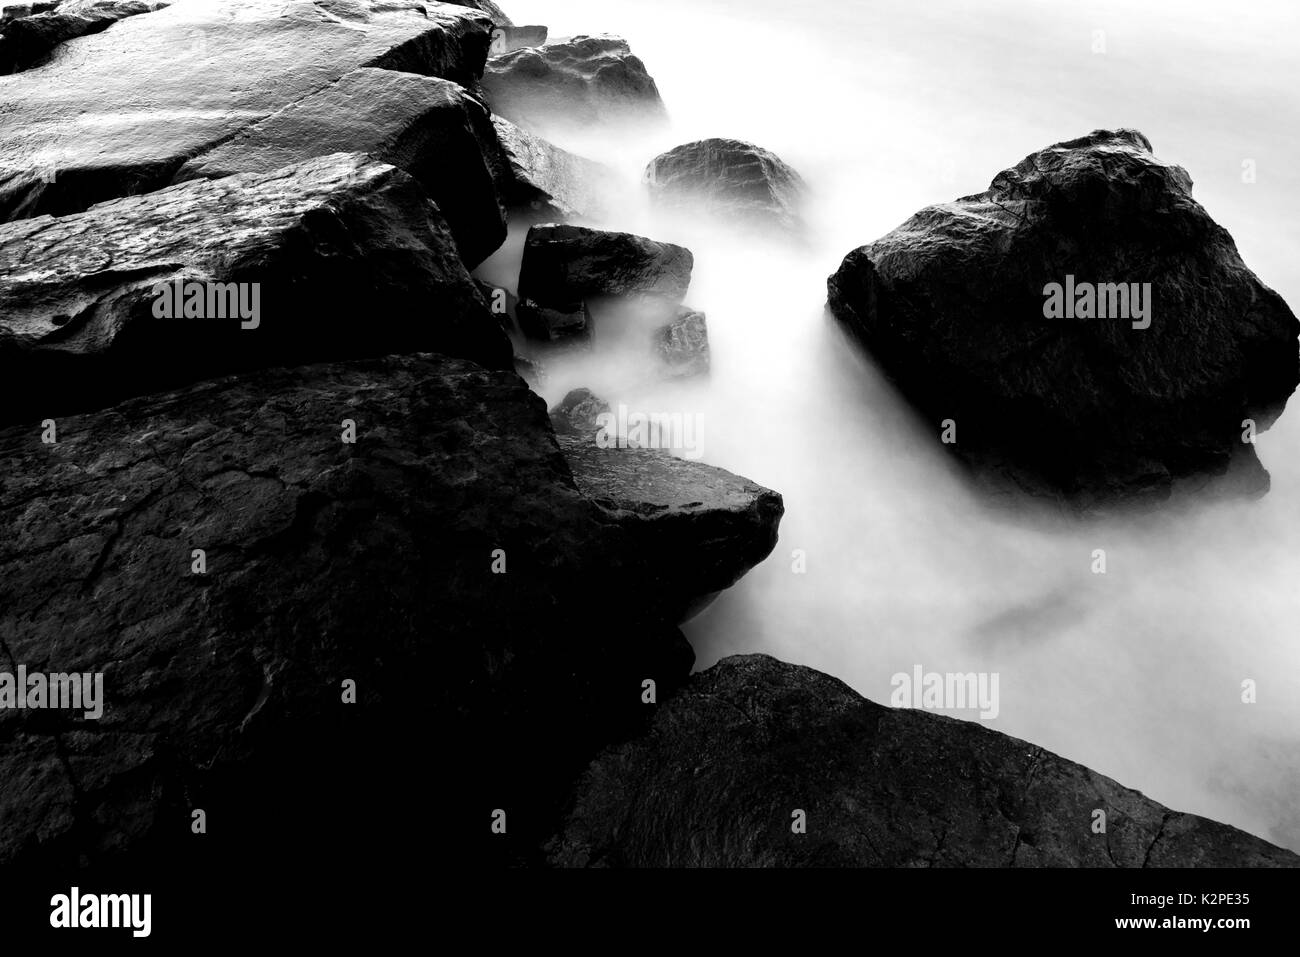 Black and white long exposure water and stones background in cool colors - Stock Image